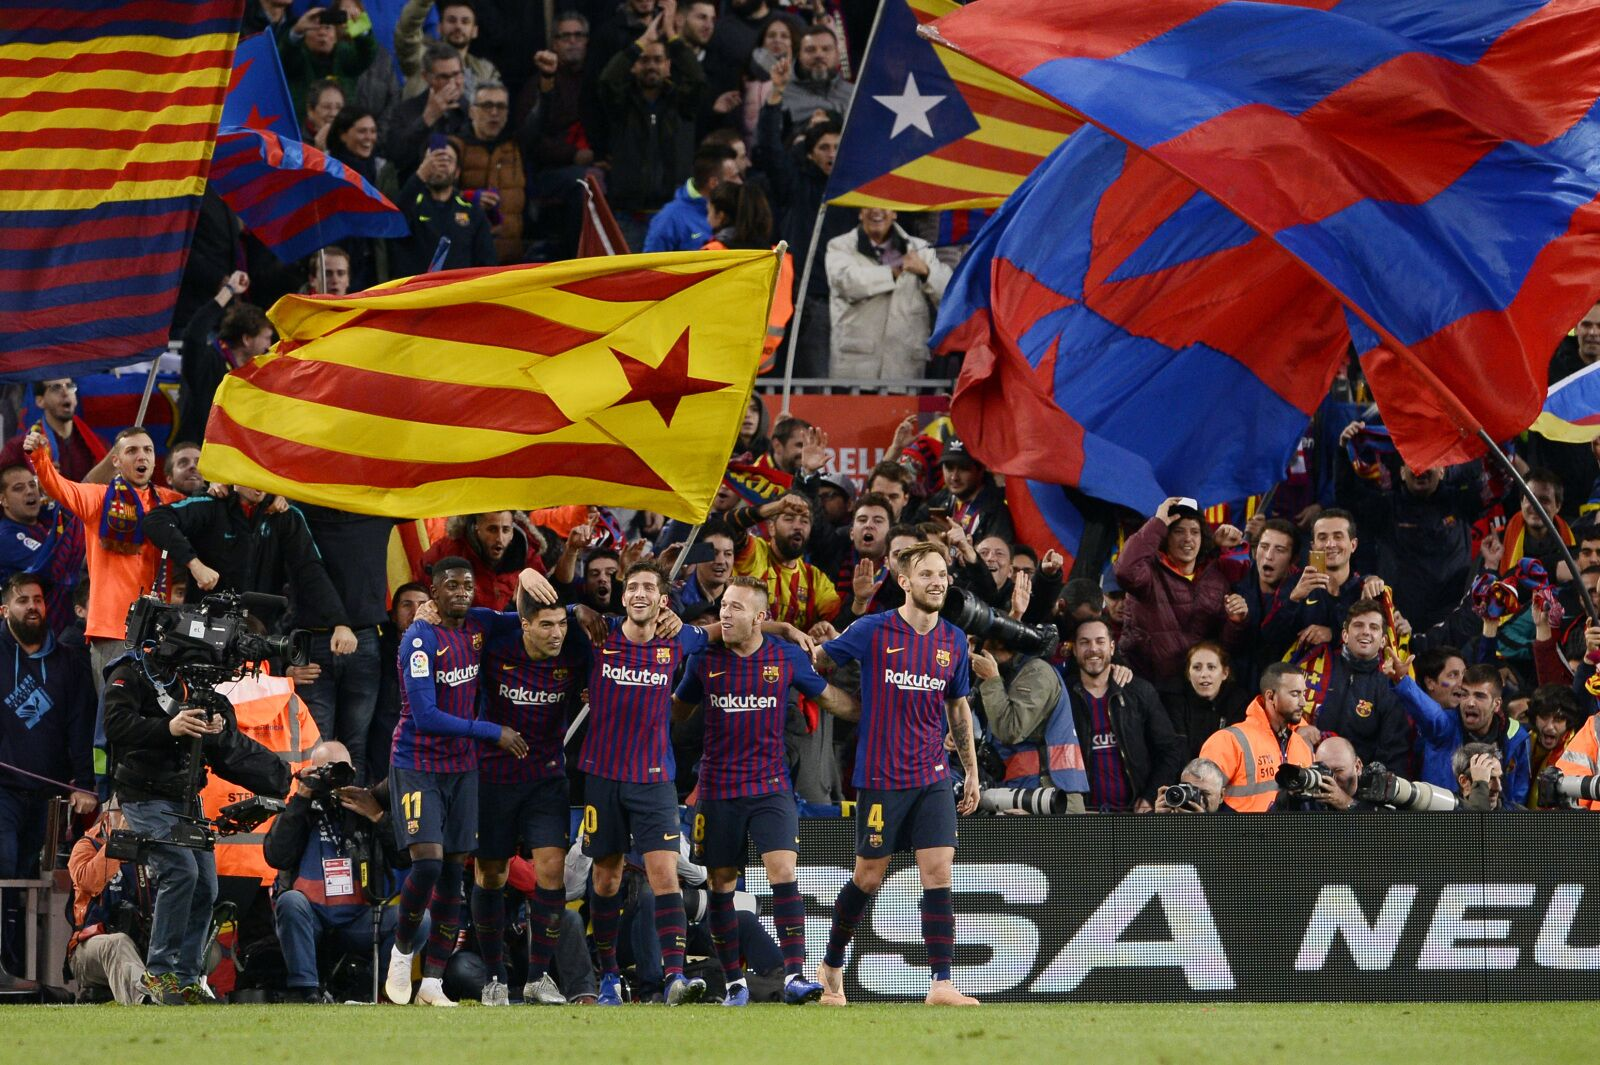 5 talking points as Barcelona thrash Real Madrid by a 5-1 margin